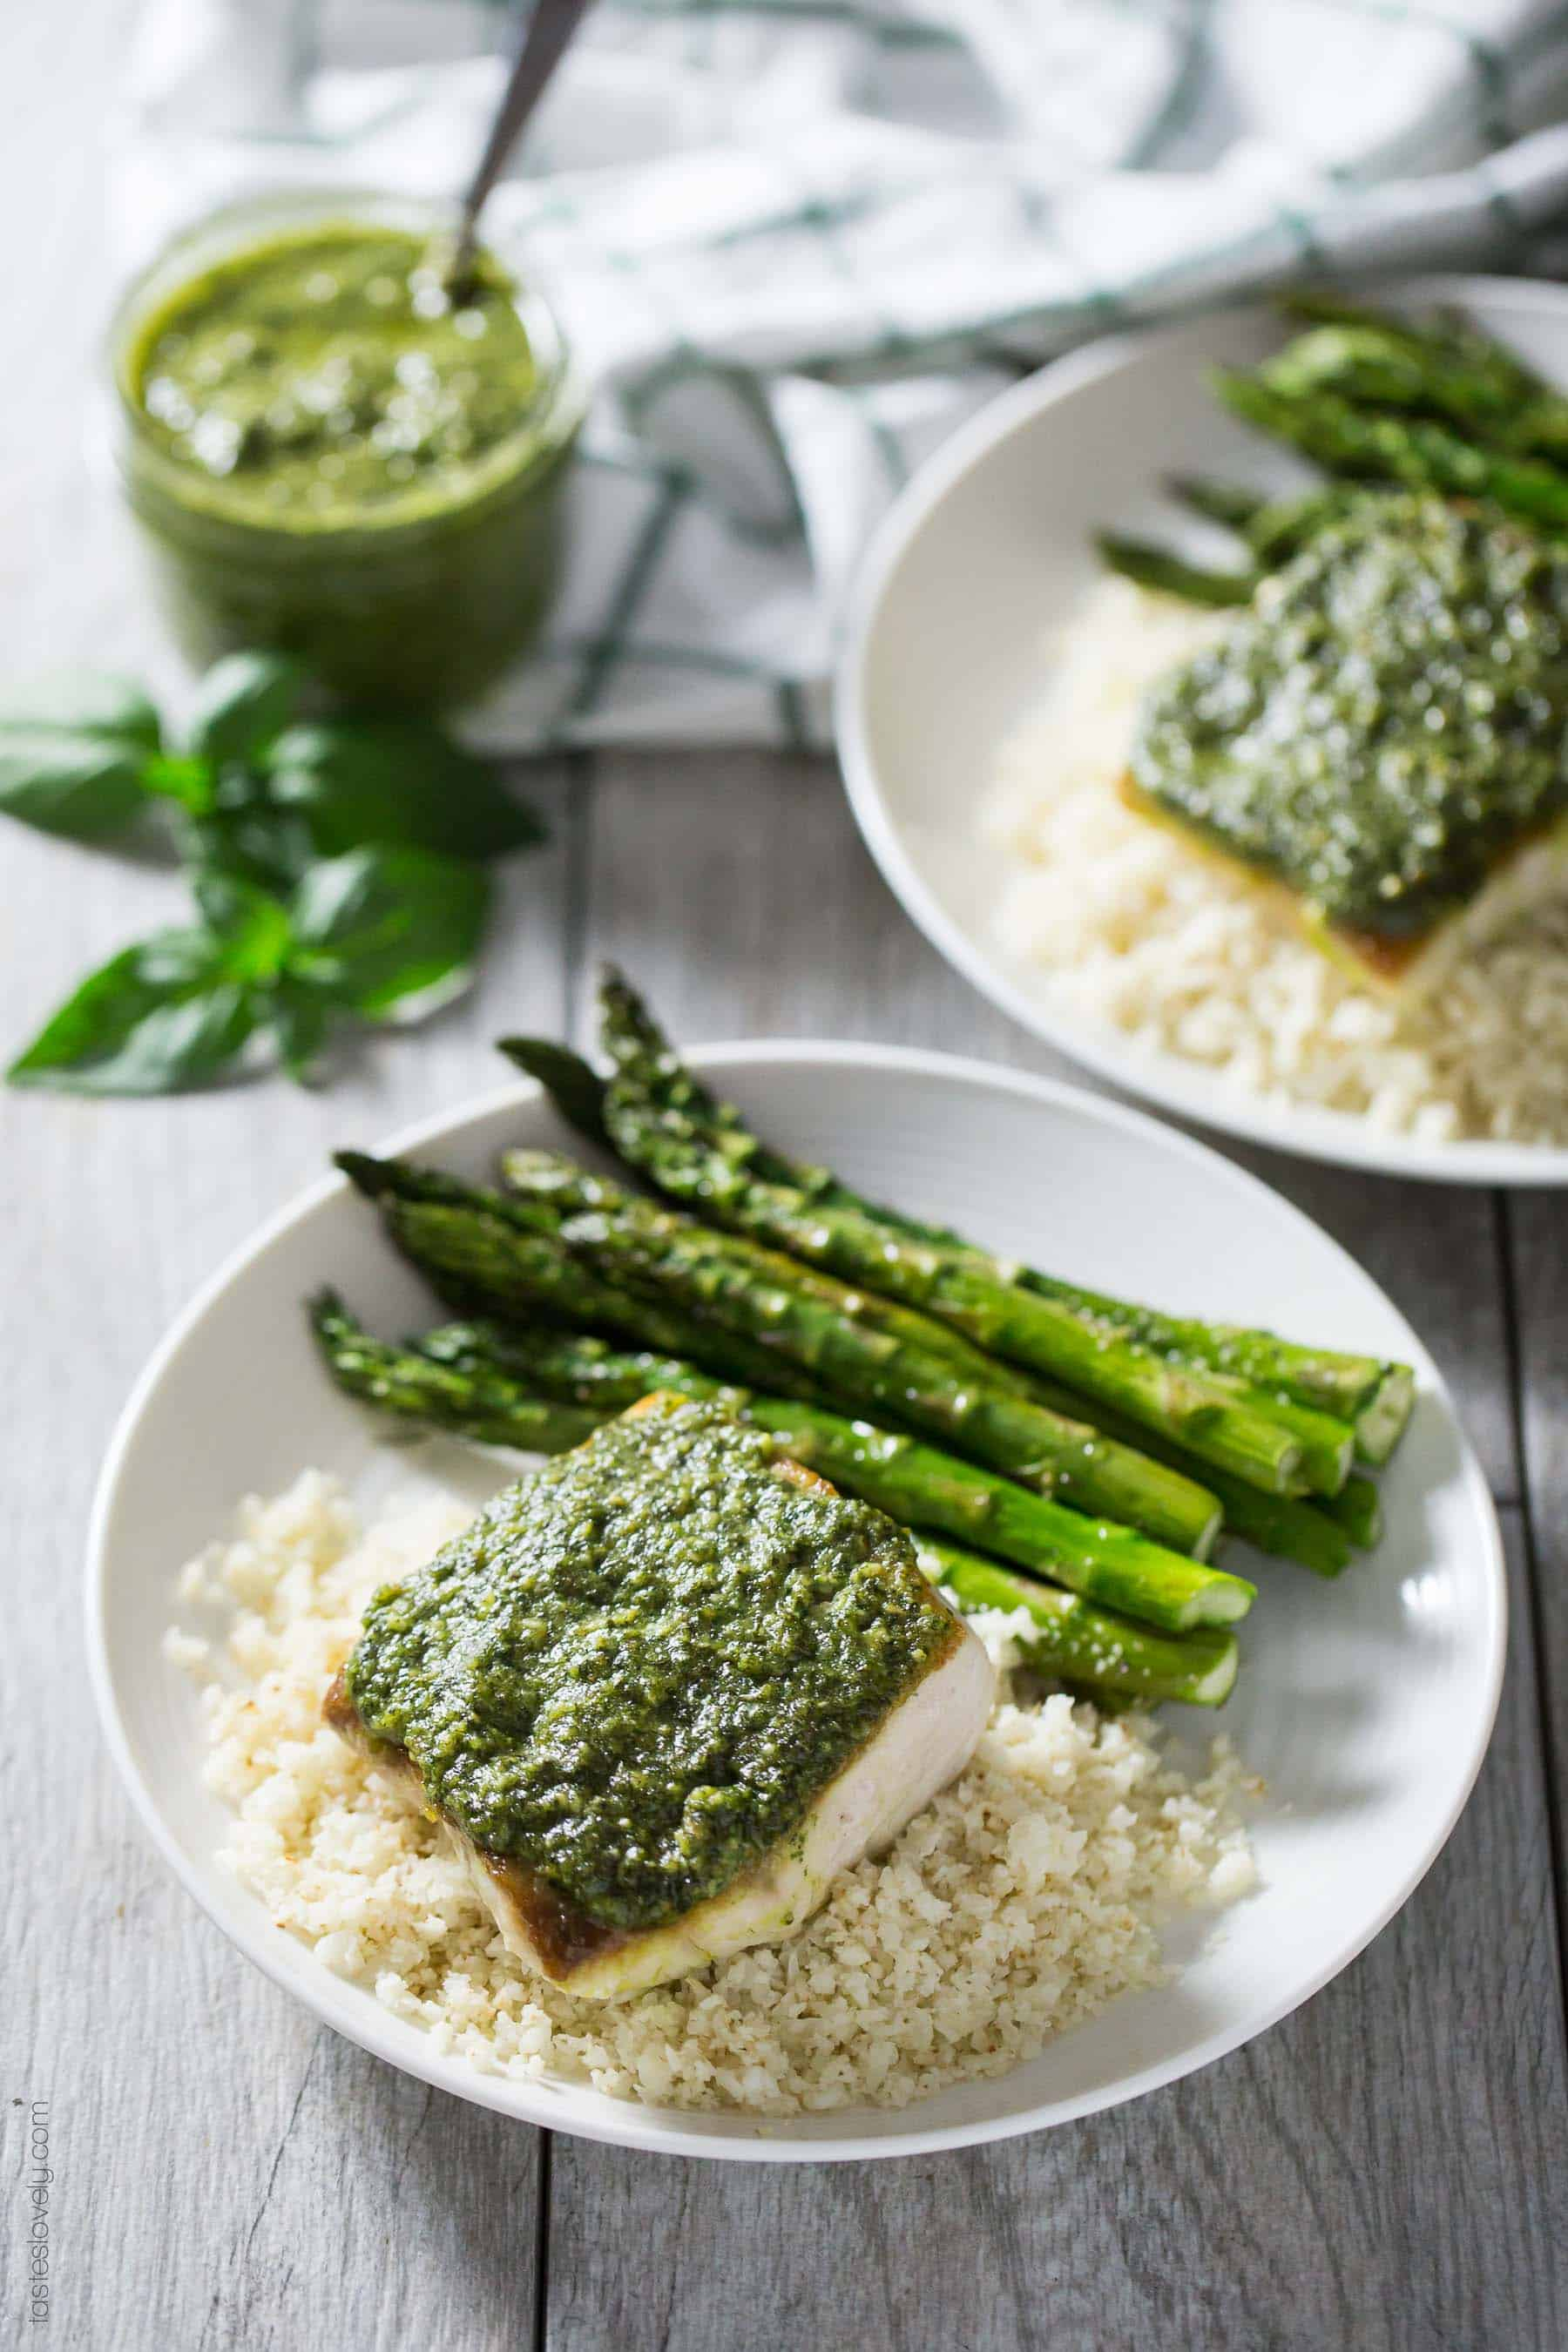 Pesto Mahi Mahi - a simple and fresh fish dinner recipe that is paleo, gluten free, Whole30 and dairy free!